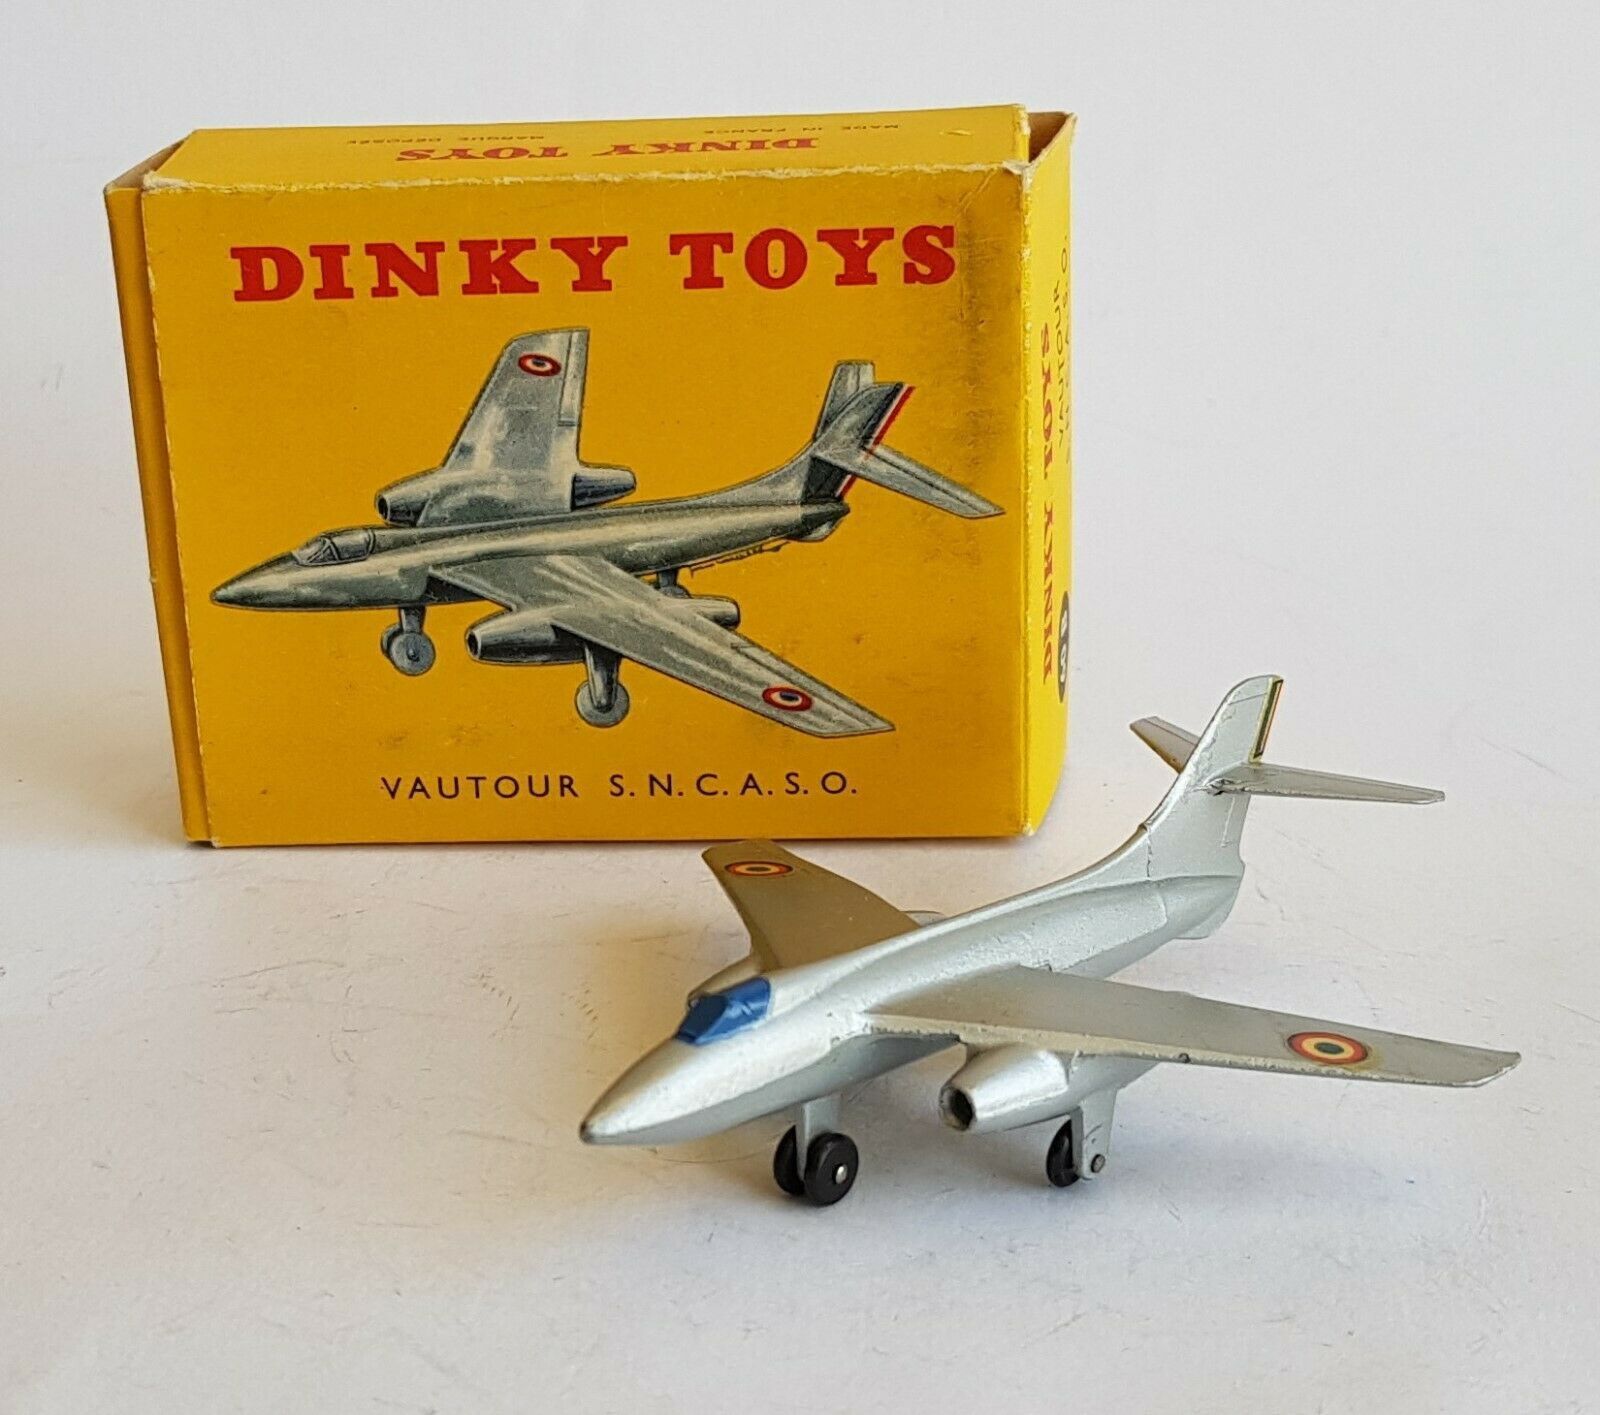 FRENCH DINKY TOYS No. 60B, vautour S.N.C.A.S.O. Fighter, - superbe état neuf